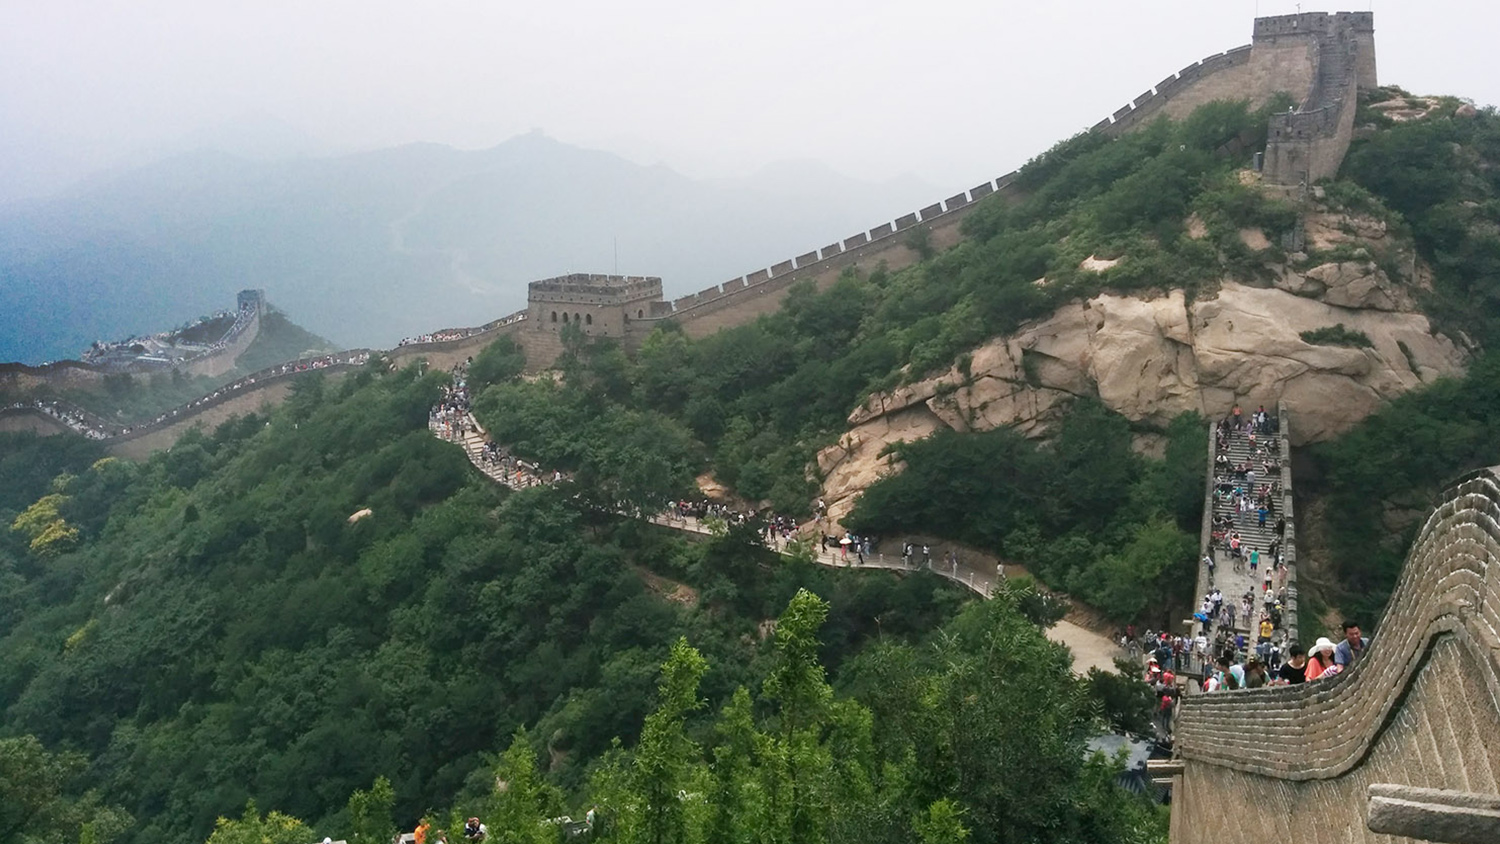 Hiking great wall of china badaling